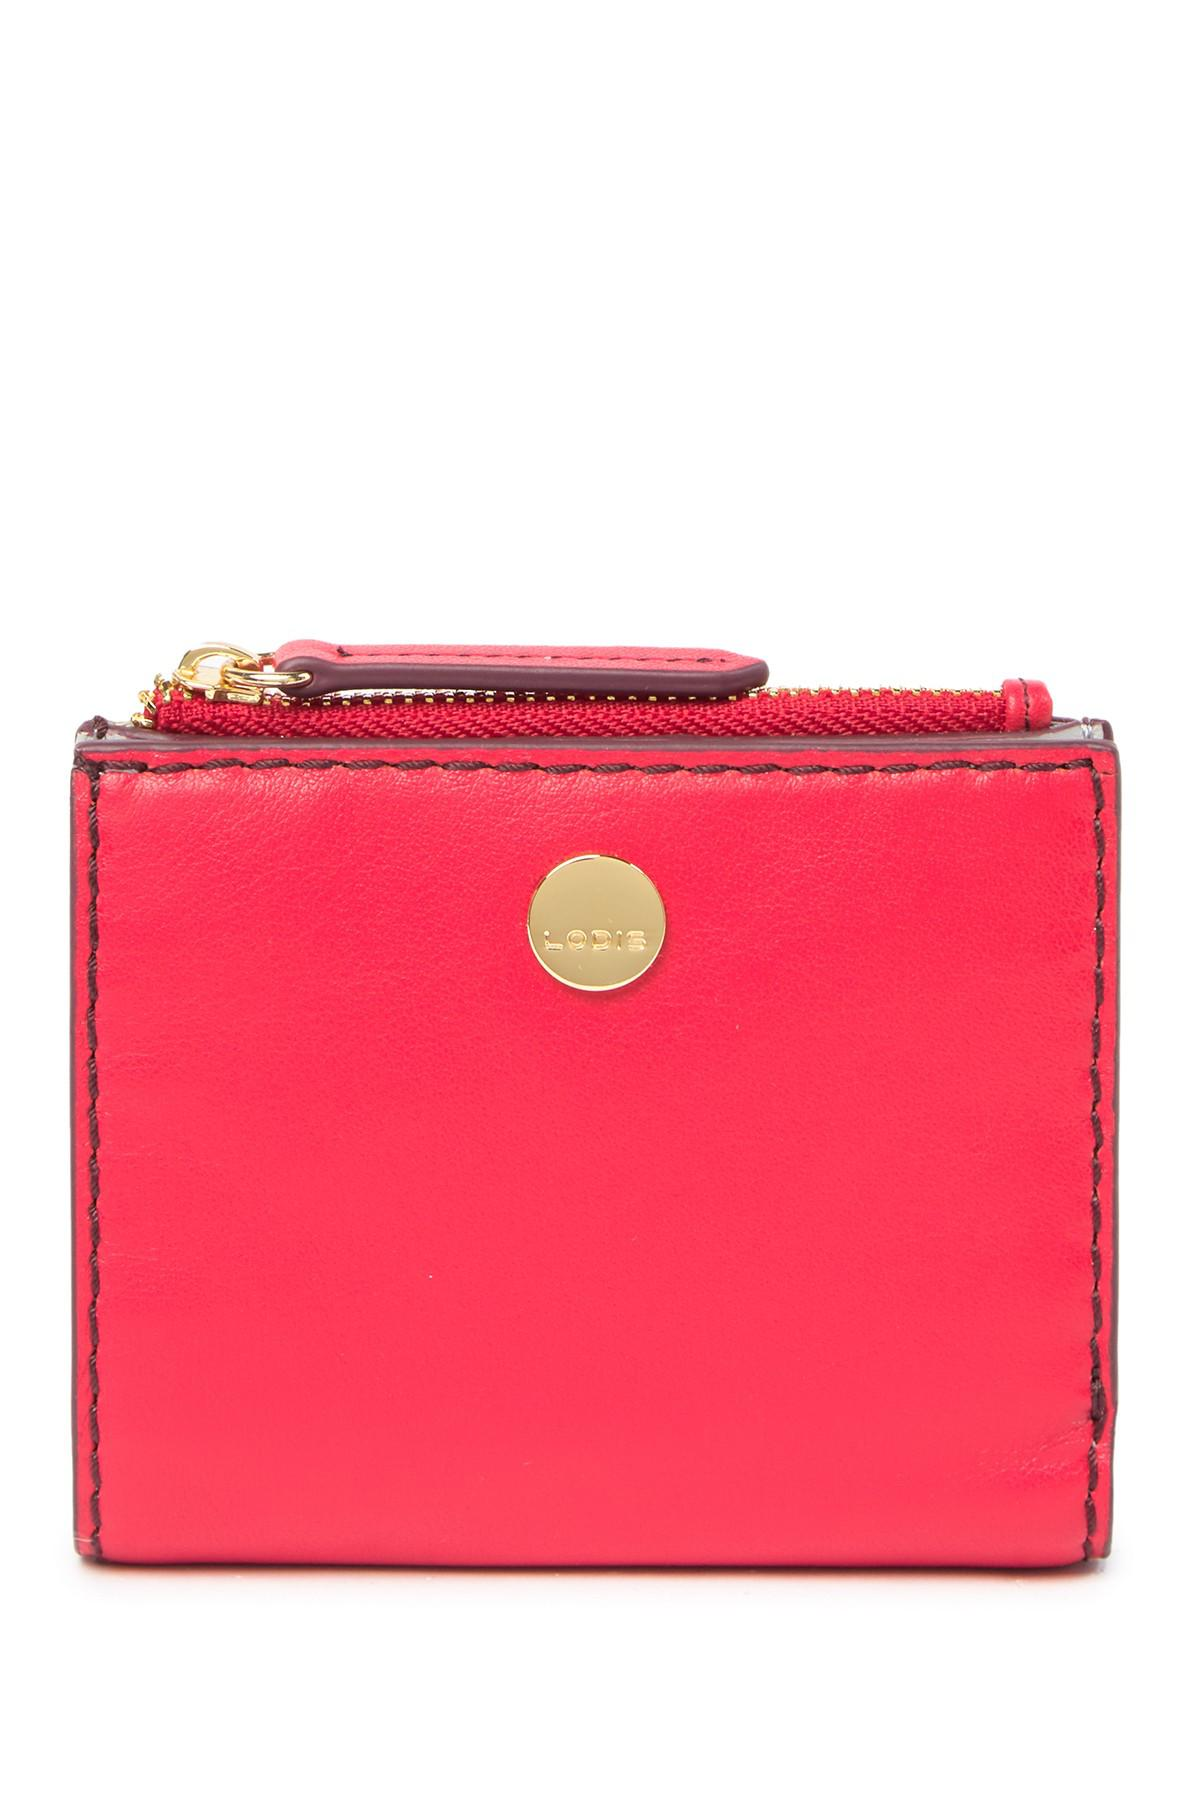 575ef2093b Lodis Downtown Aldi Leather Rfid Wallet in Red - Lyst